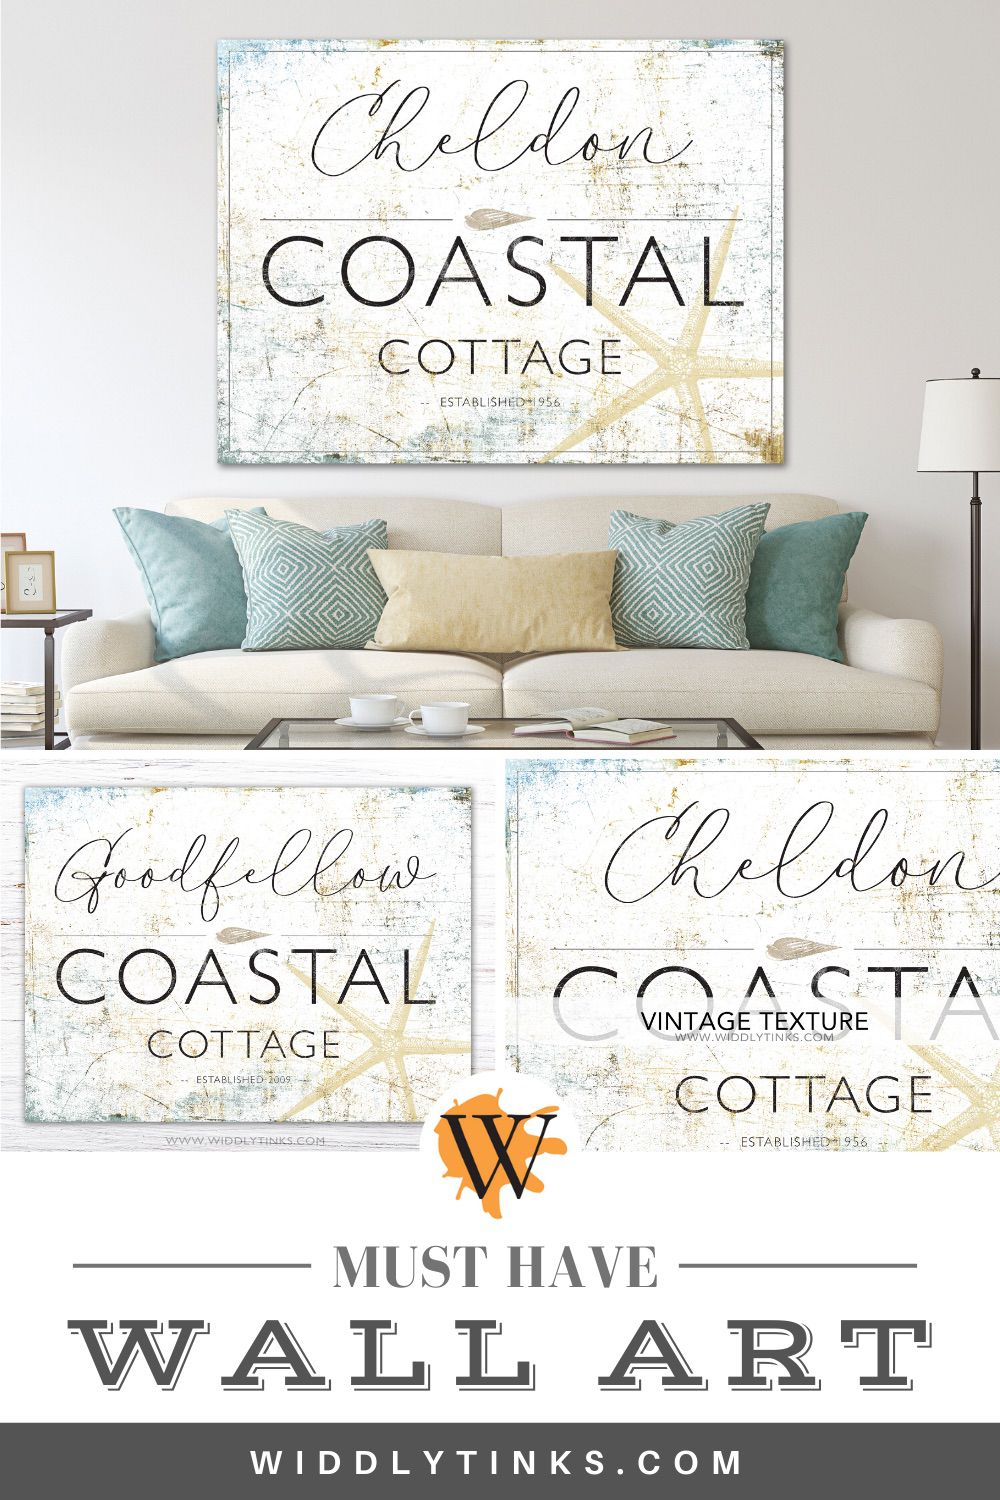 coastal cottage last name established sign